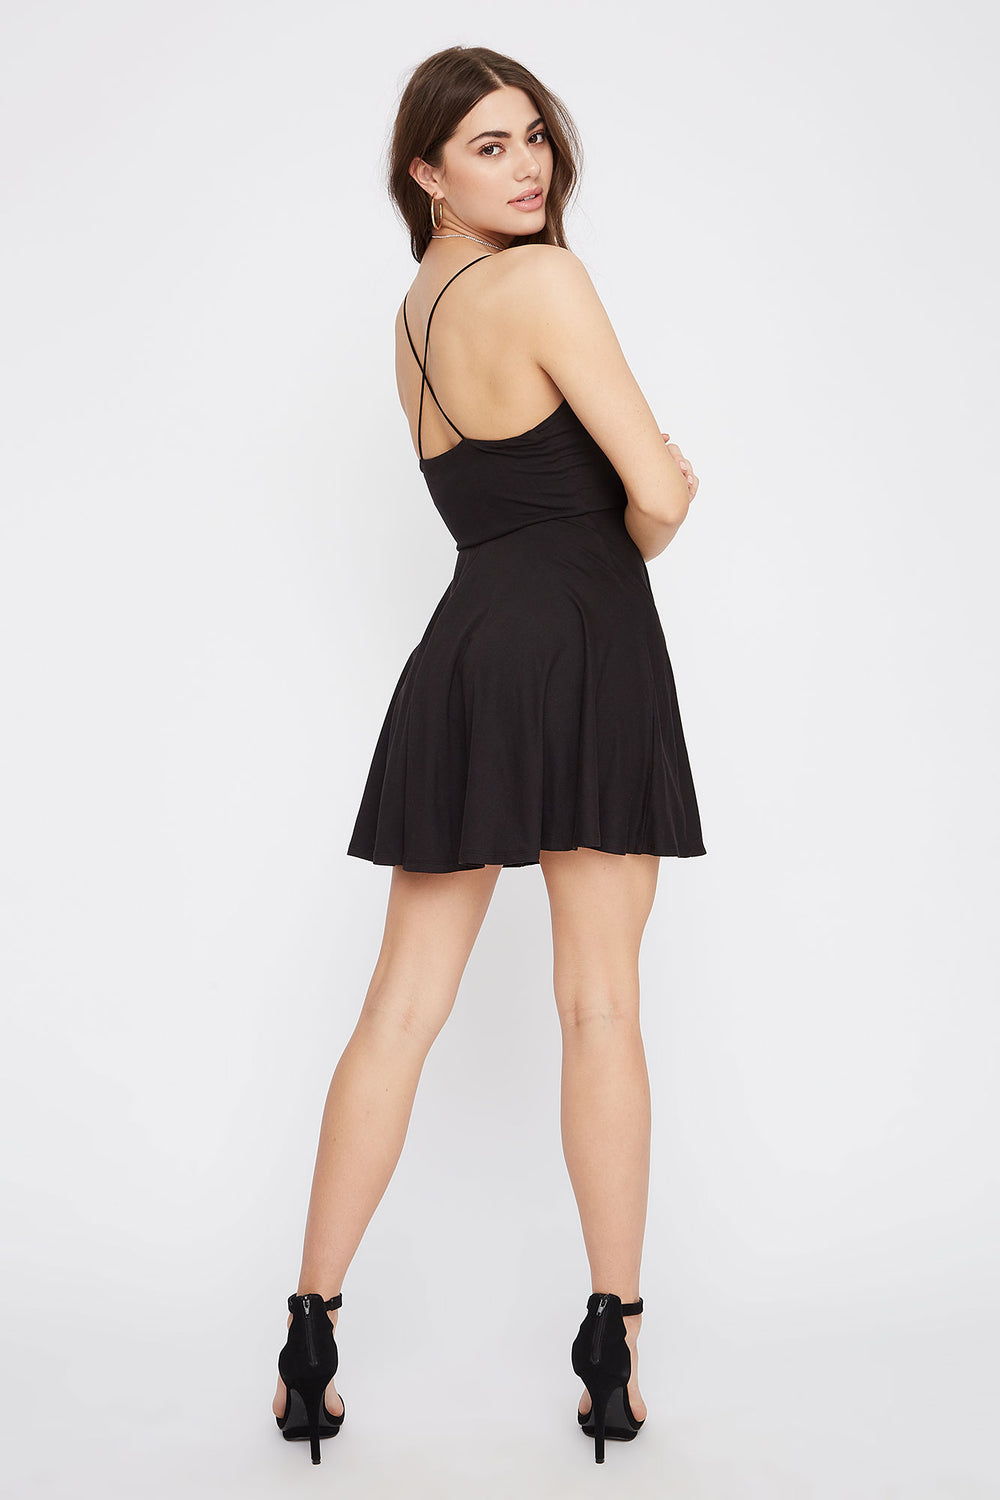 Soft V-Neck Criss Cross Back Skater Dress Black